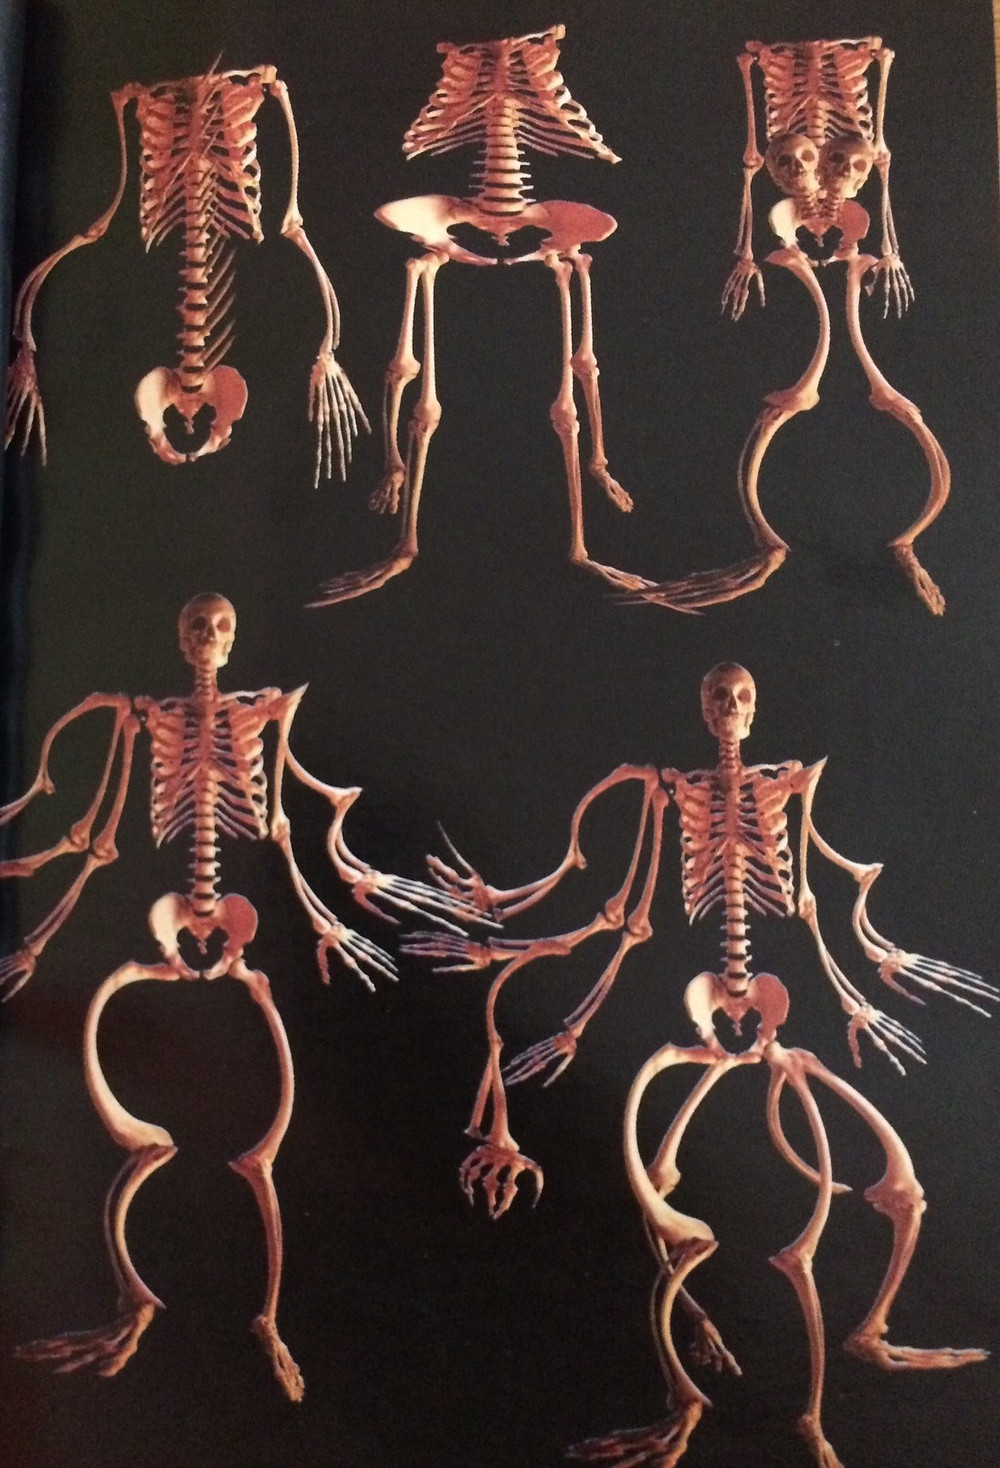 Check this shit out! Human skeletons mutations commonly seen in religious discussions of Darwinism